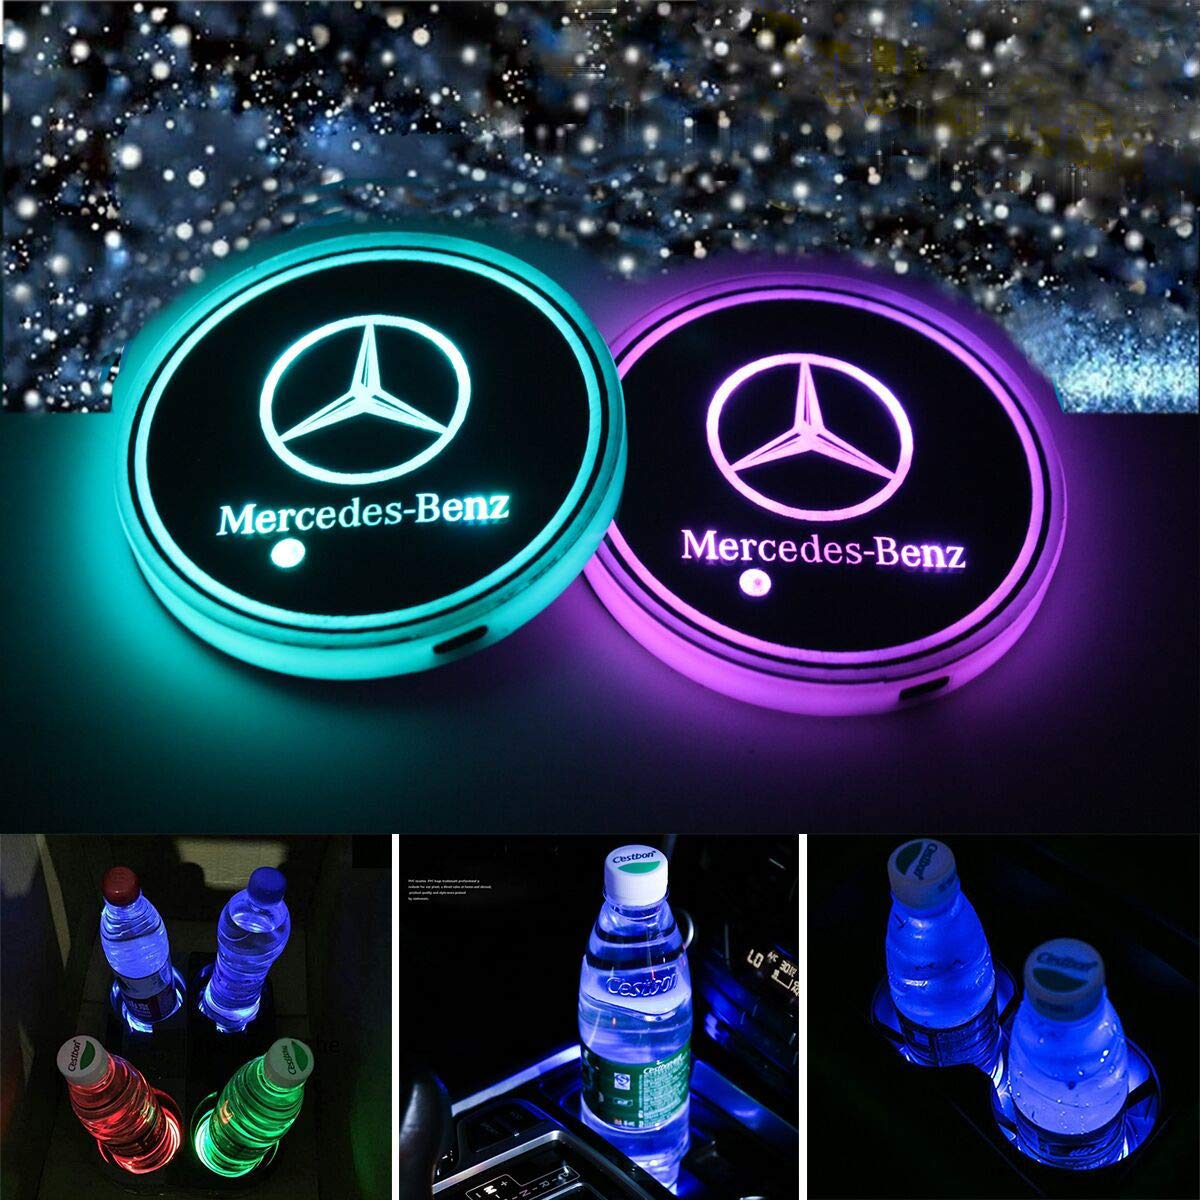 LED Interior Atmosphere Lamp Decoration Light Kingshun 2 PCS LED Car Cup Holder Lights for Mercedes-B-e-n-z 7 Colors Changing USB Charging Mat Luminescent Cup Pad